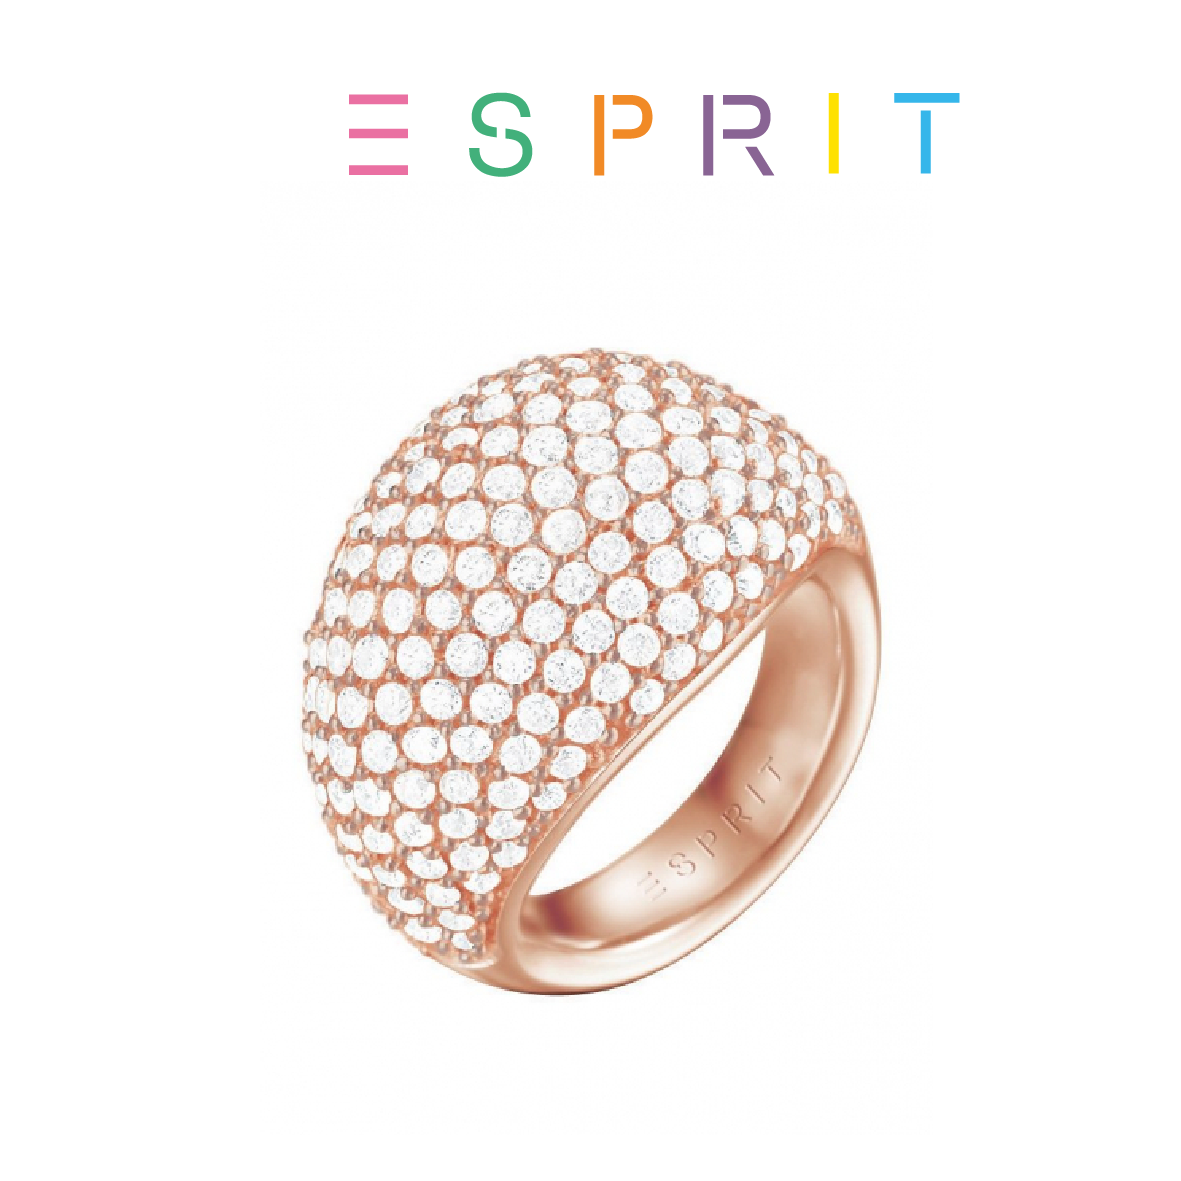 esprit ring mede esrg c190 rose gold 19mm you like it